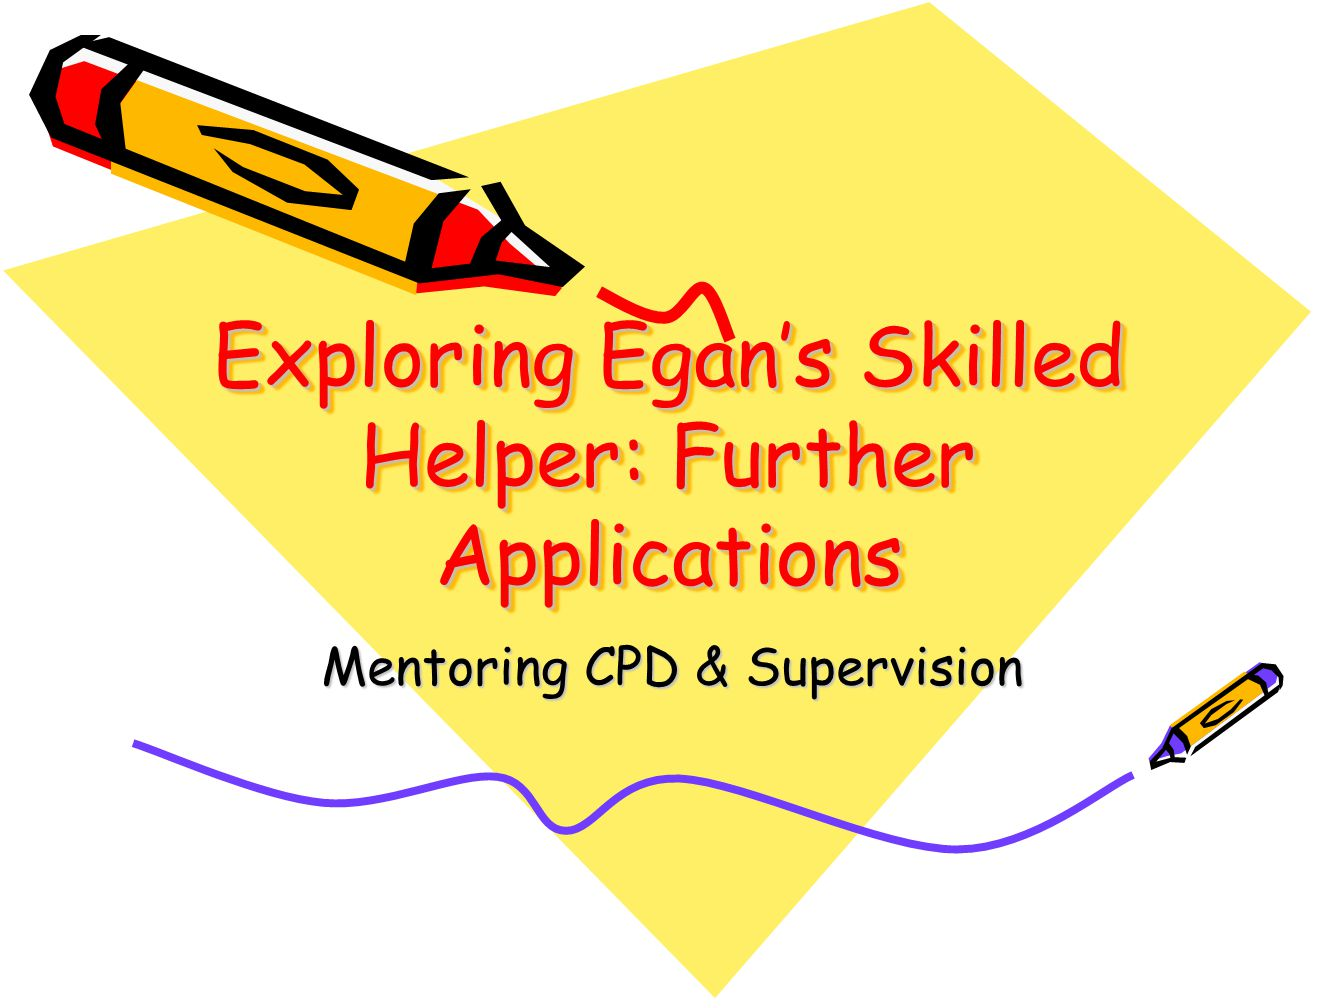 Exploring Egan's Skilled Helper: Further Applications Mentoring CPD & Supervision